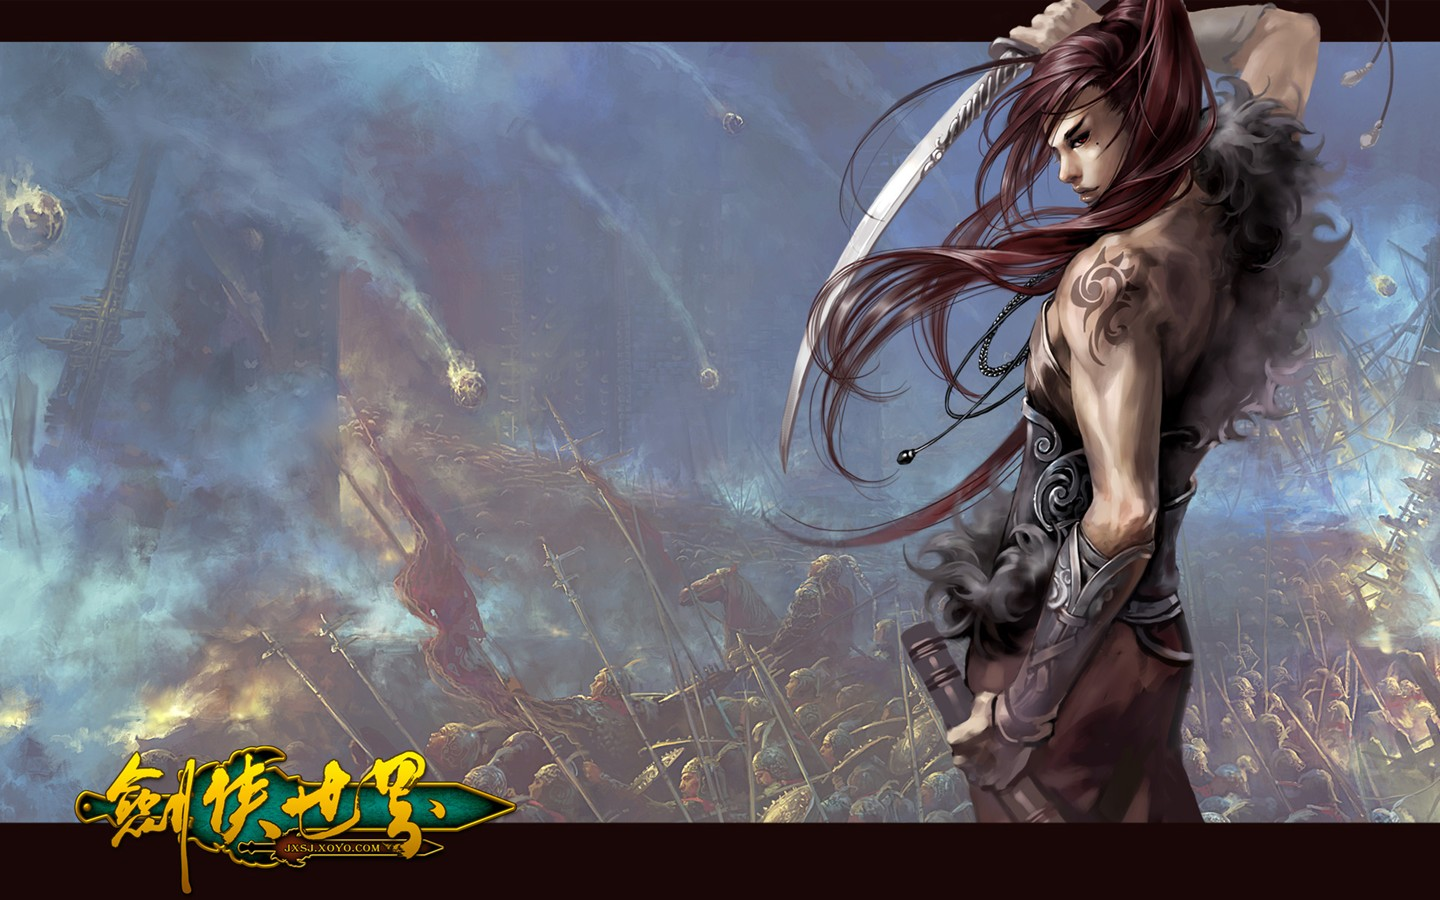 D of the swordsman in the world martial arts online game wallpaper 30247